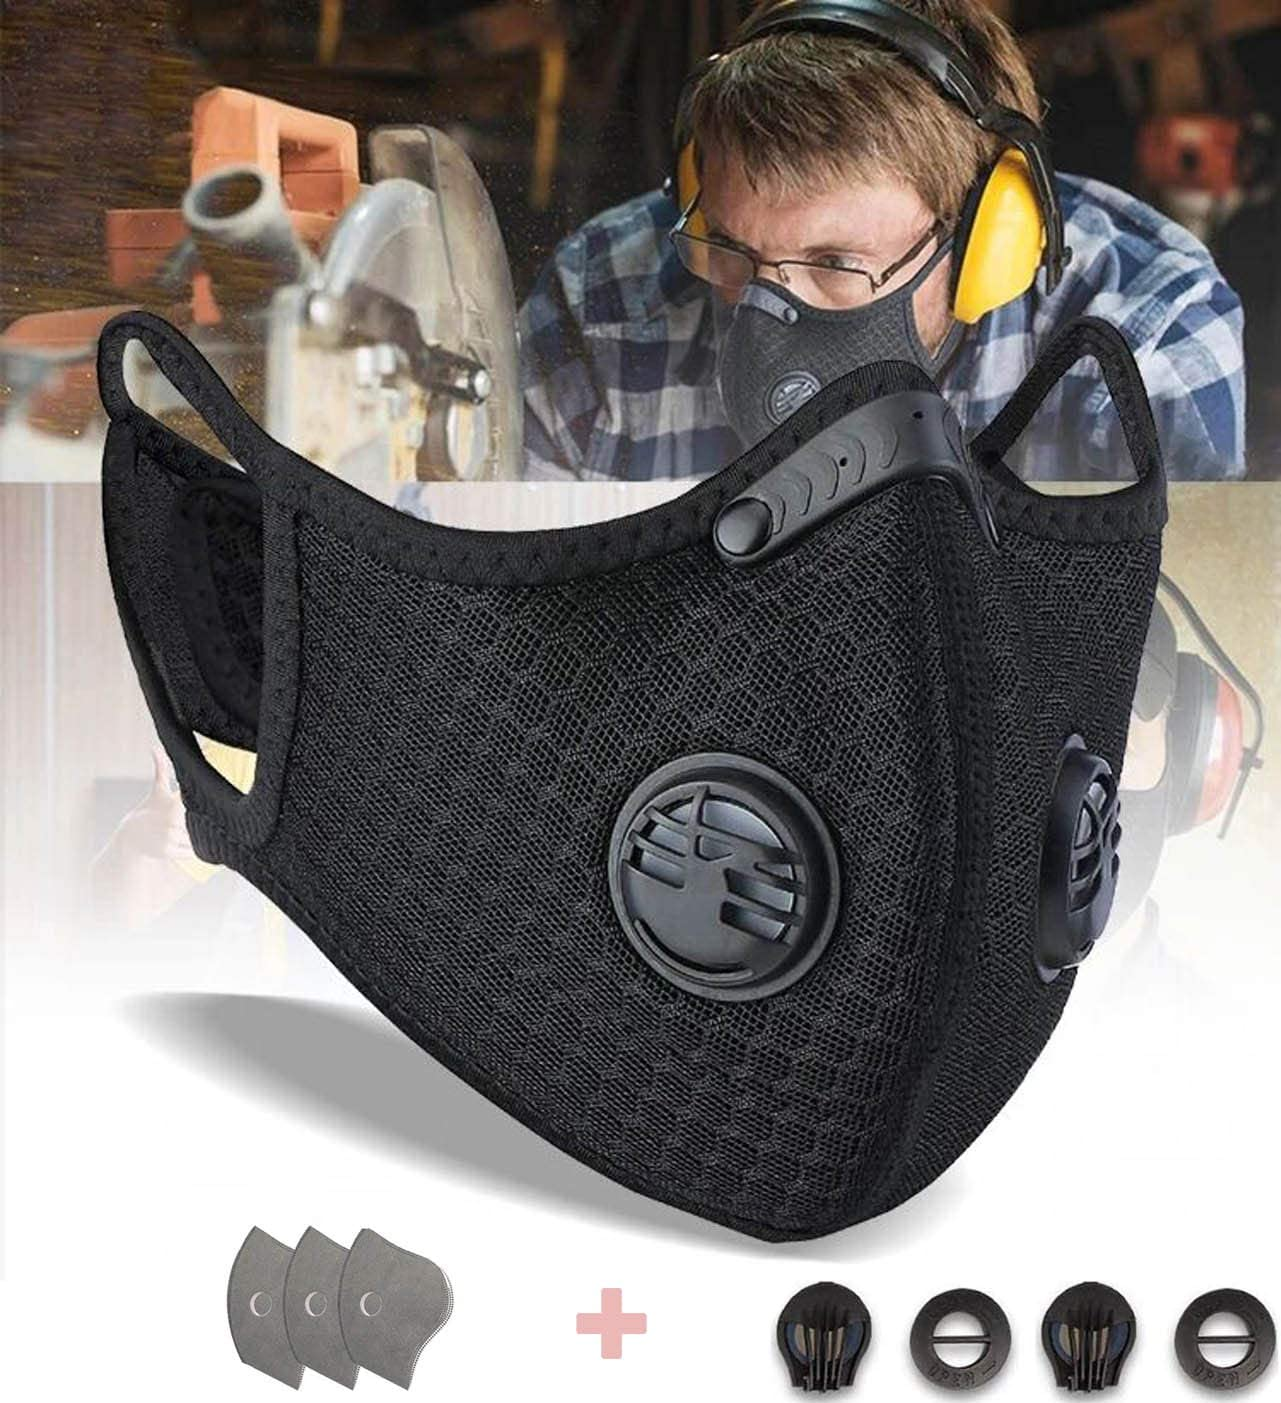 DZT1968 PM2.5 Premium Anti-Pollution Mask & Neck Gaiter Face Scarf Cover Mask for Men Women - Safest Guard for Cycling Reusable Dust Mask for Woodworking Running Sanding Mowing Half Mask